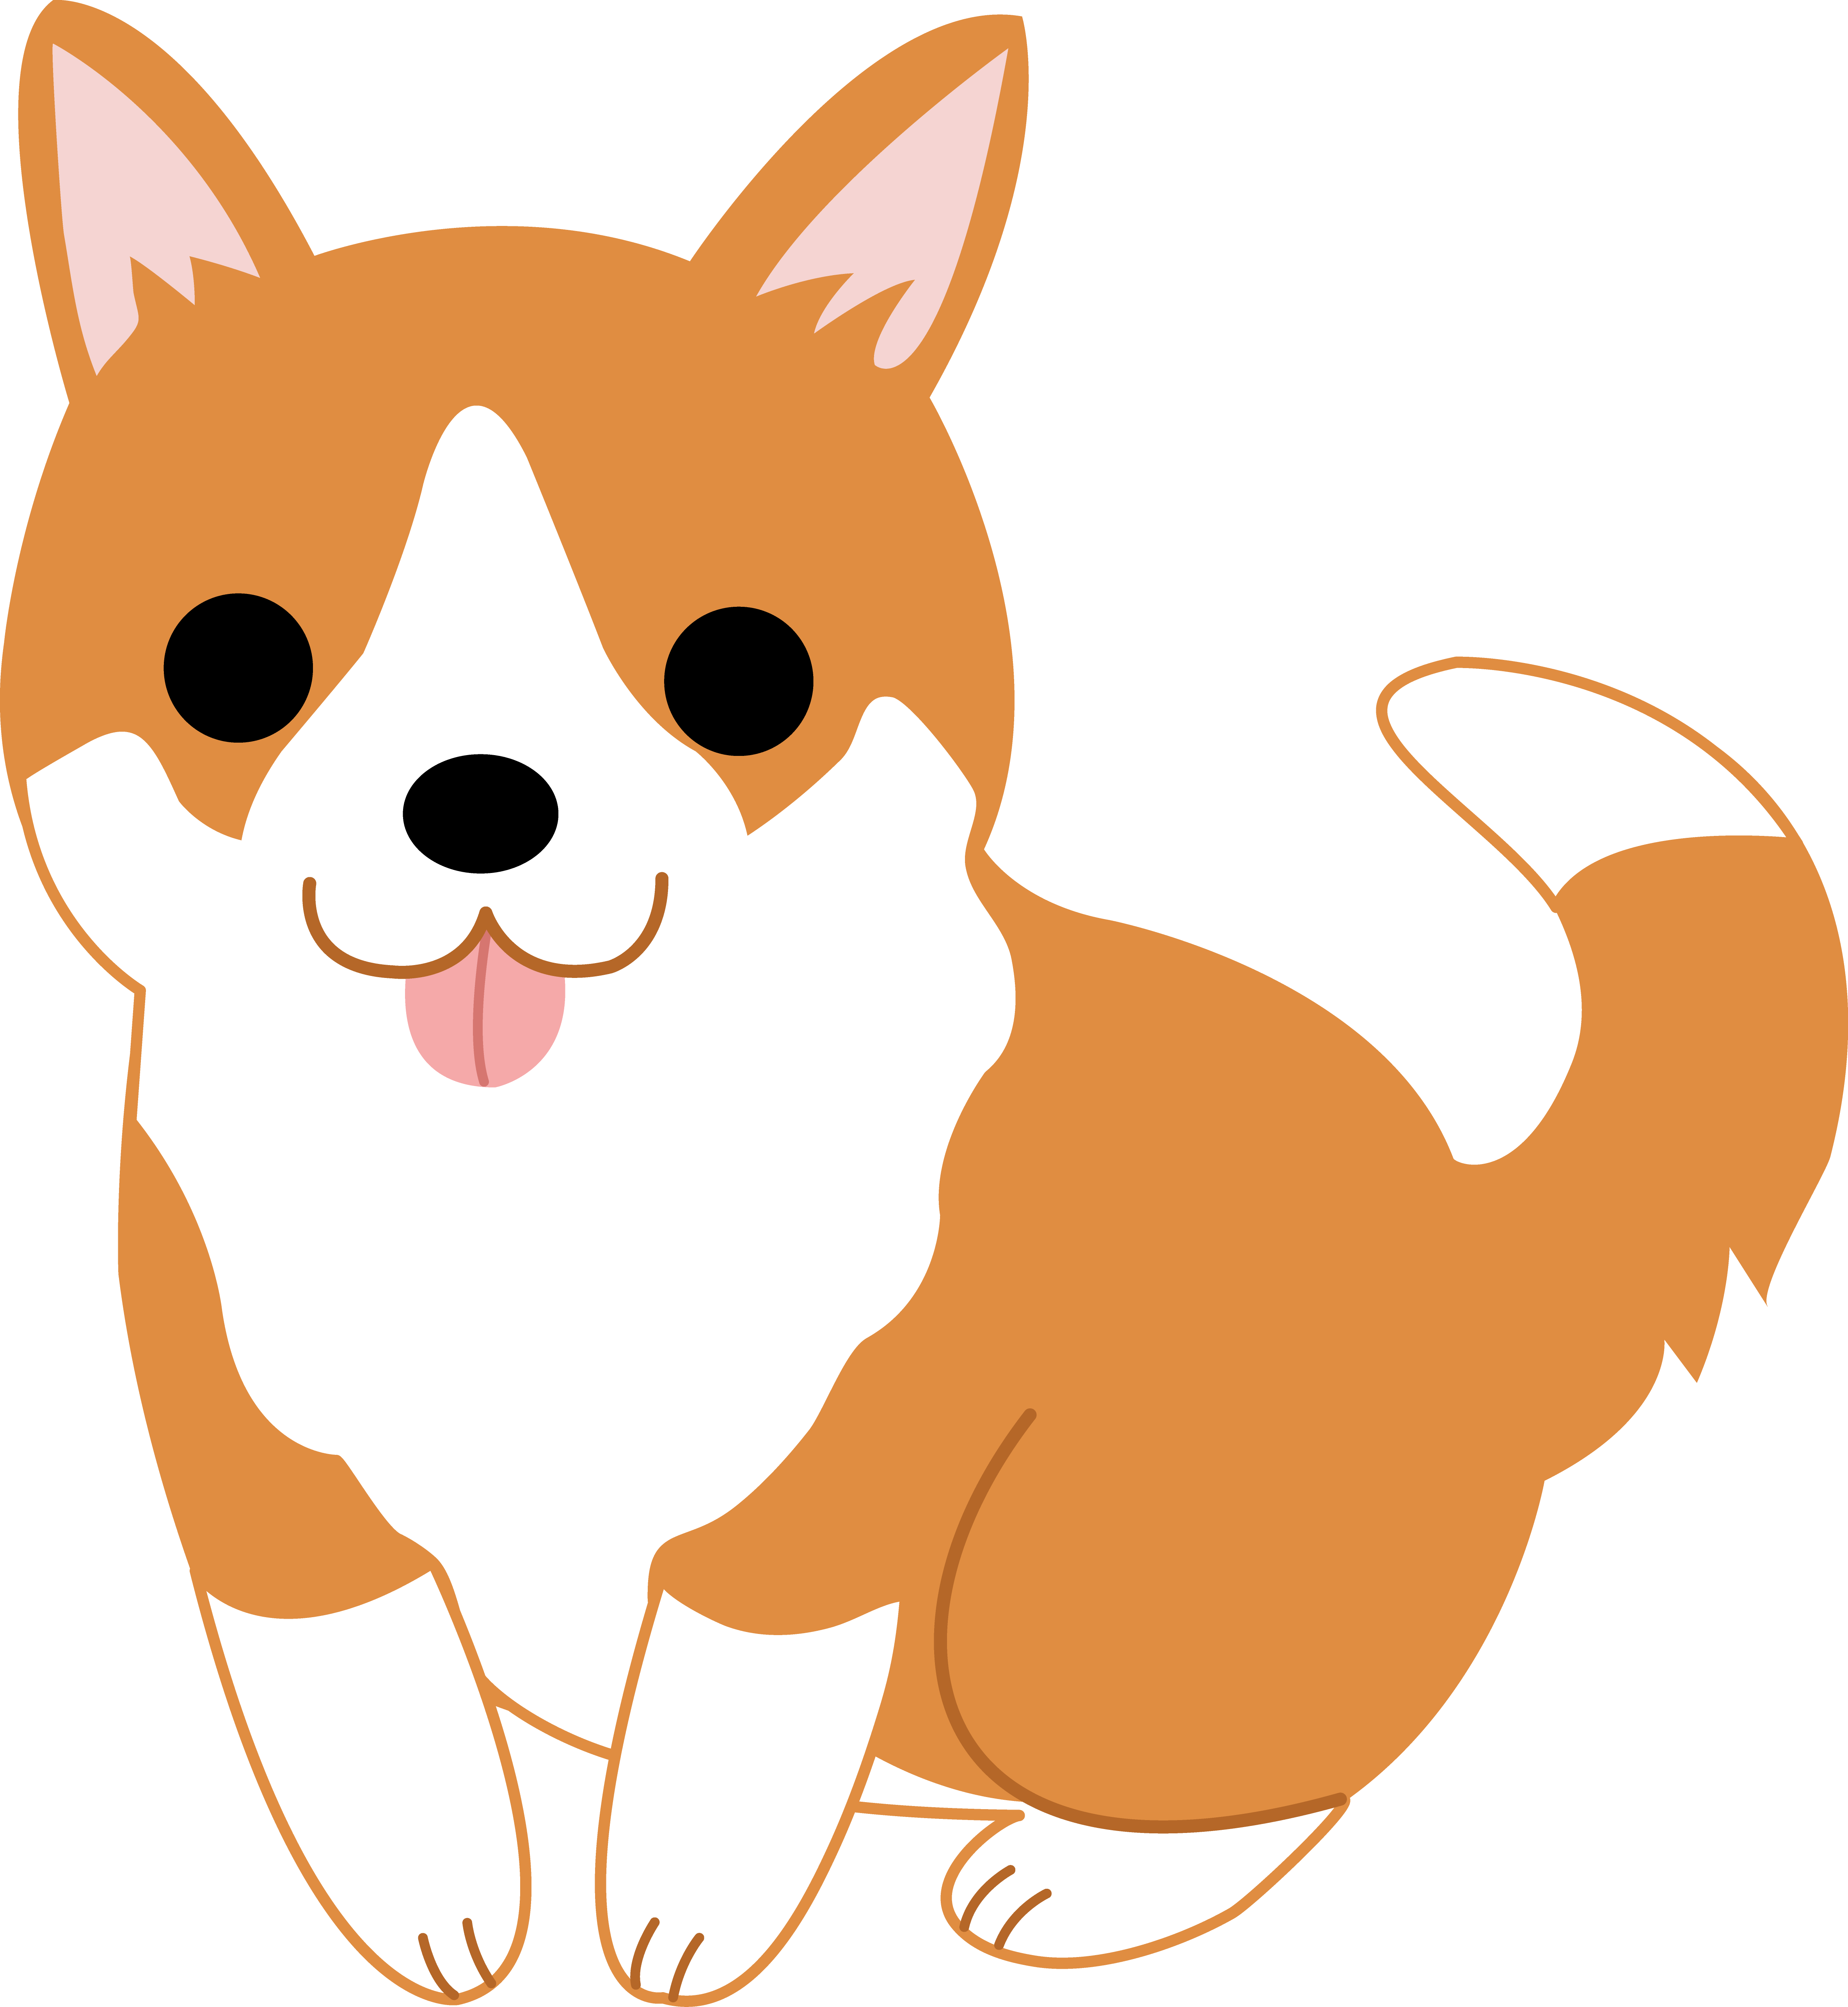 Husky clipart puppie.  collection of kawaii